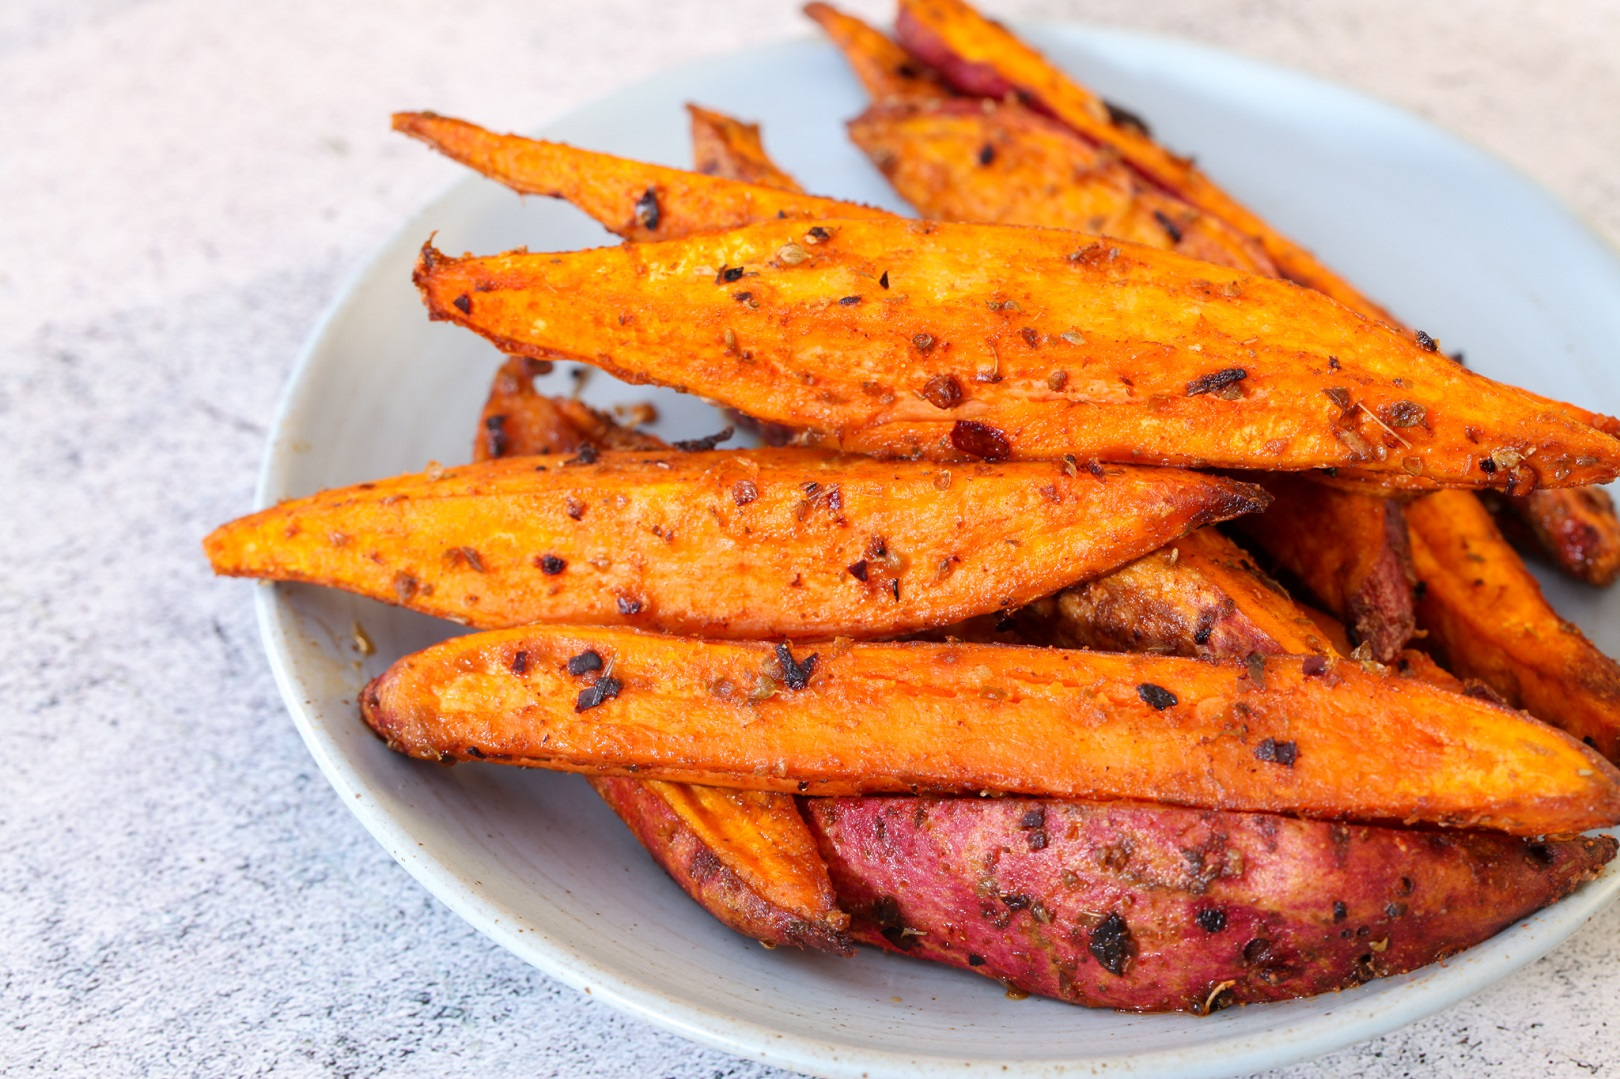 Honey glazed sweet potato wedges w chili, lemon & oregano